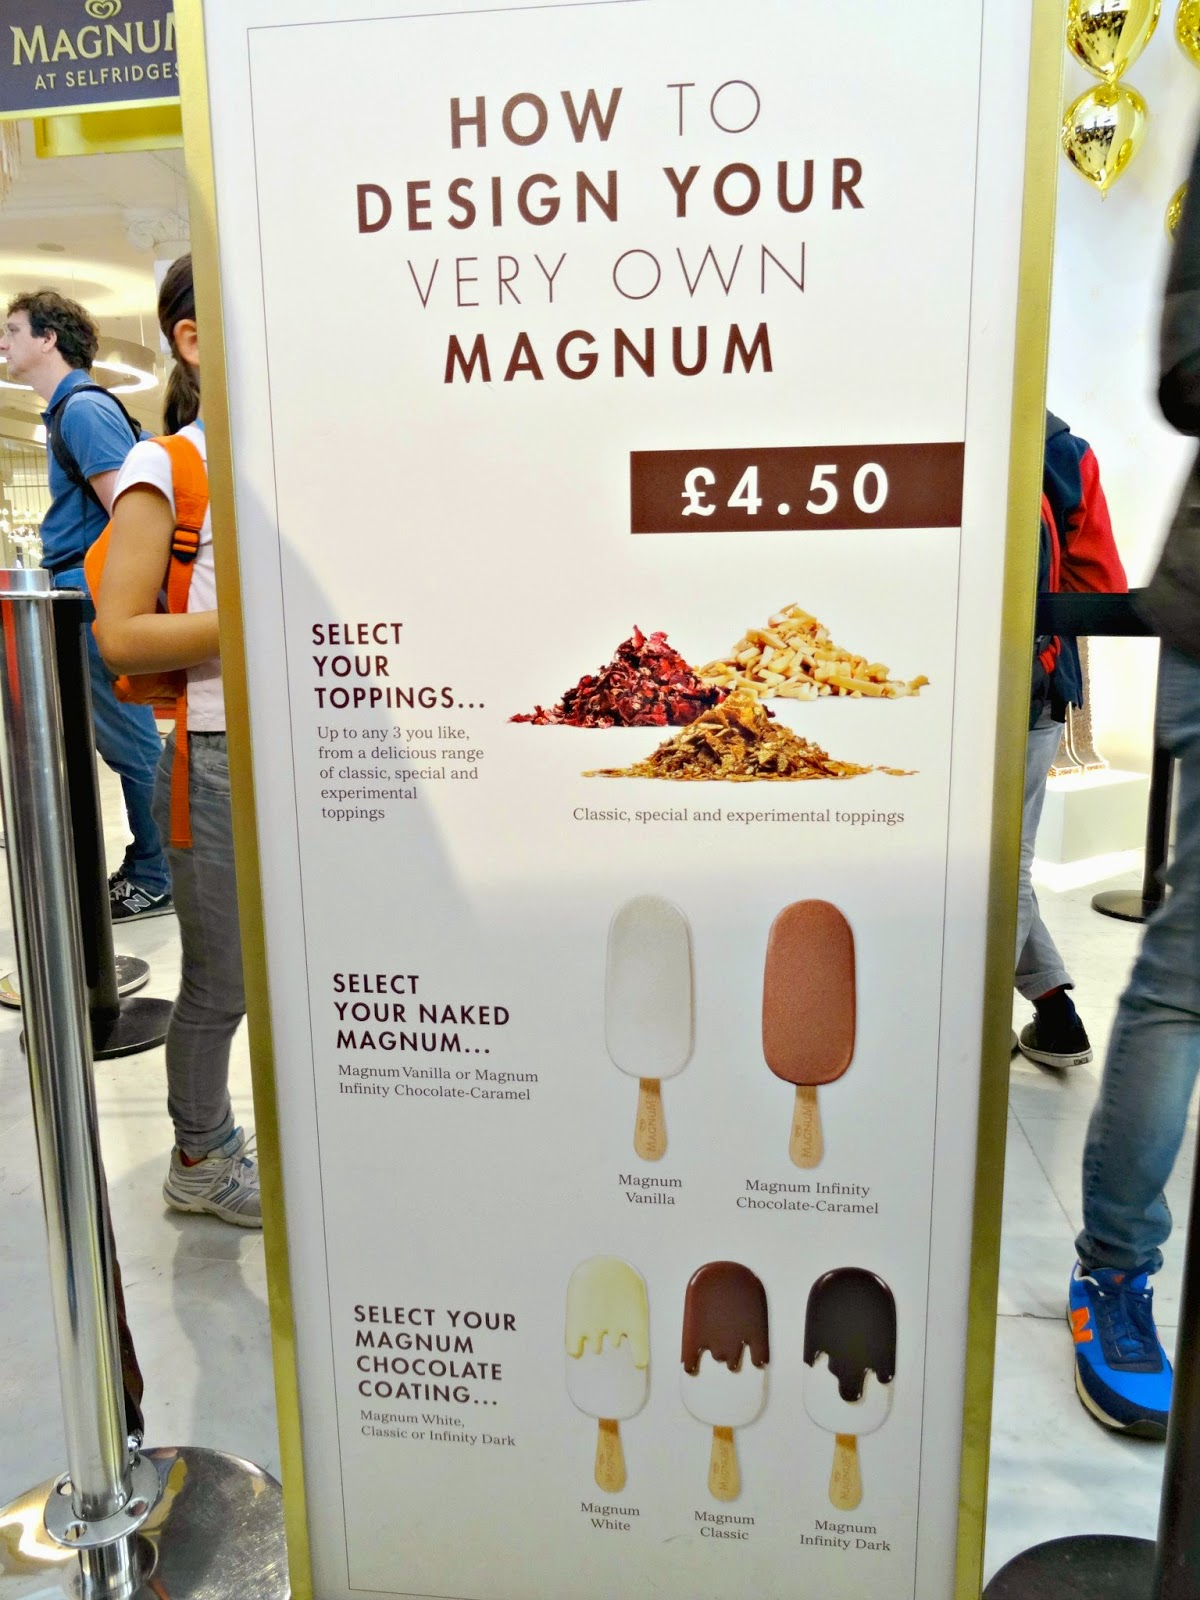 How to design your own Magnum